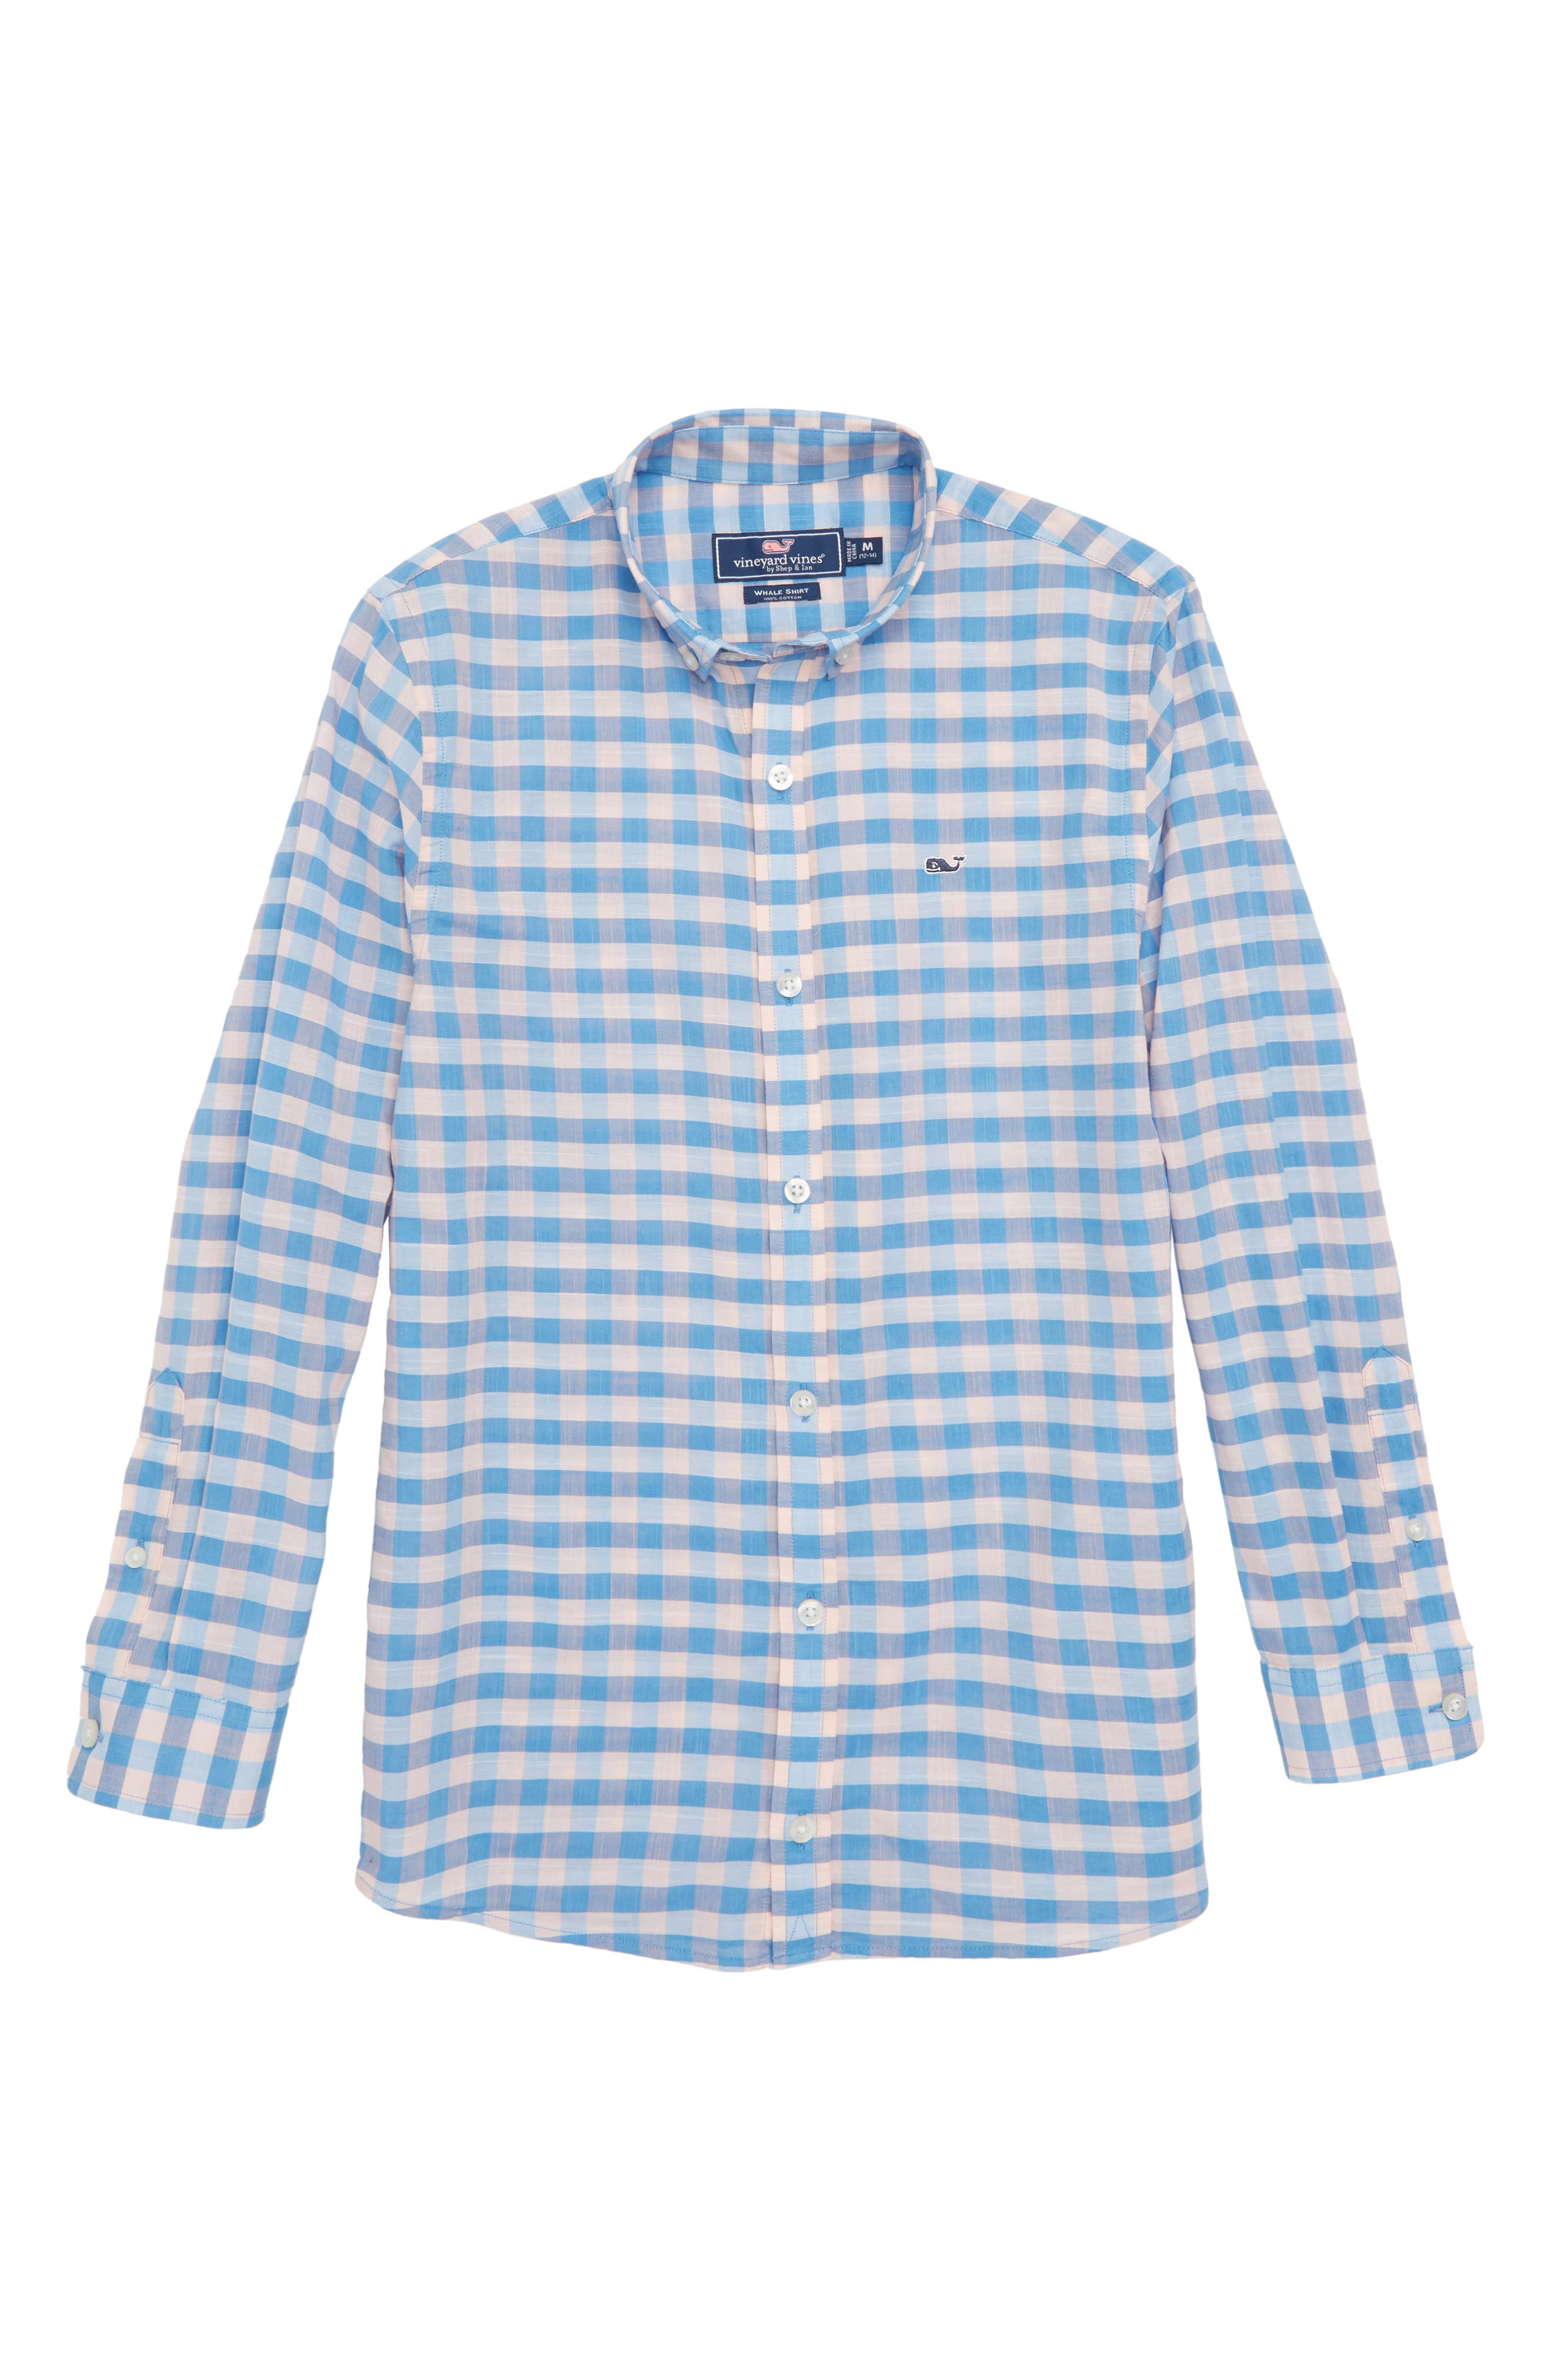 Pelican Cay Beach Check Woven Shirt,                             Main thumbnail 1, color,                             696